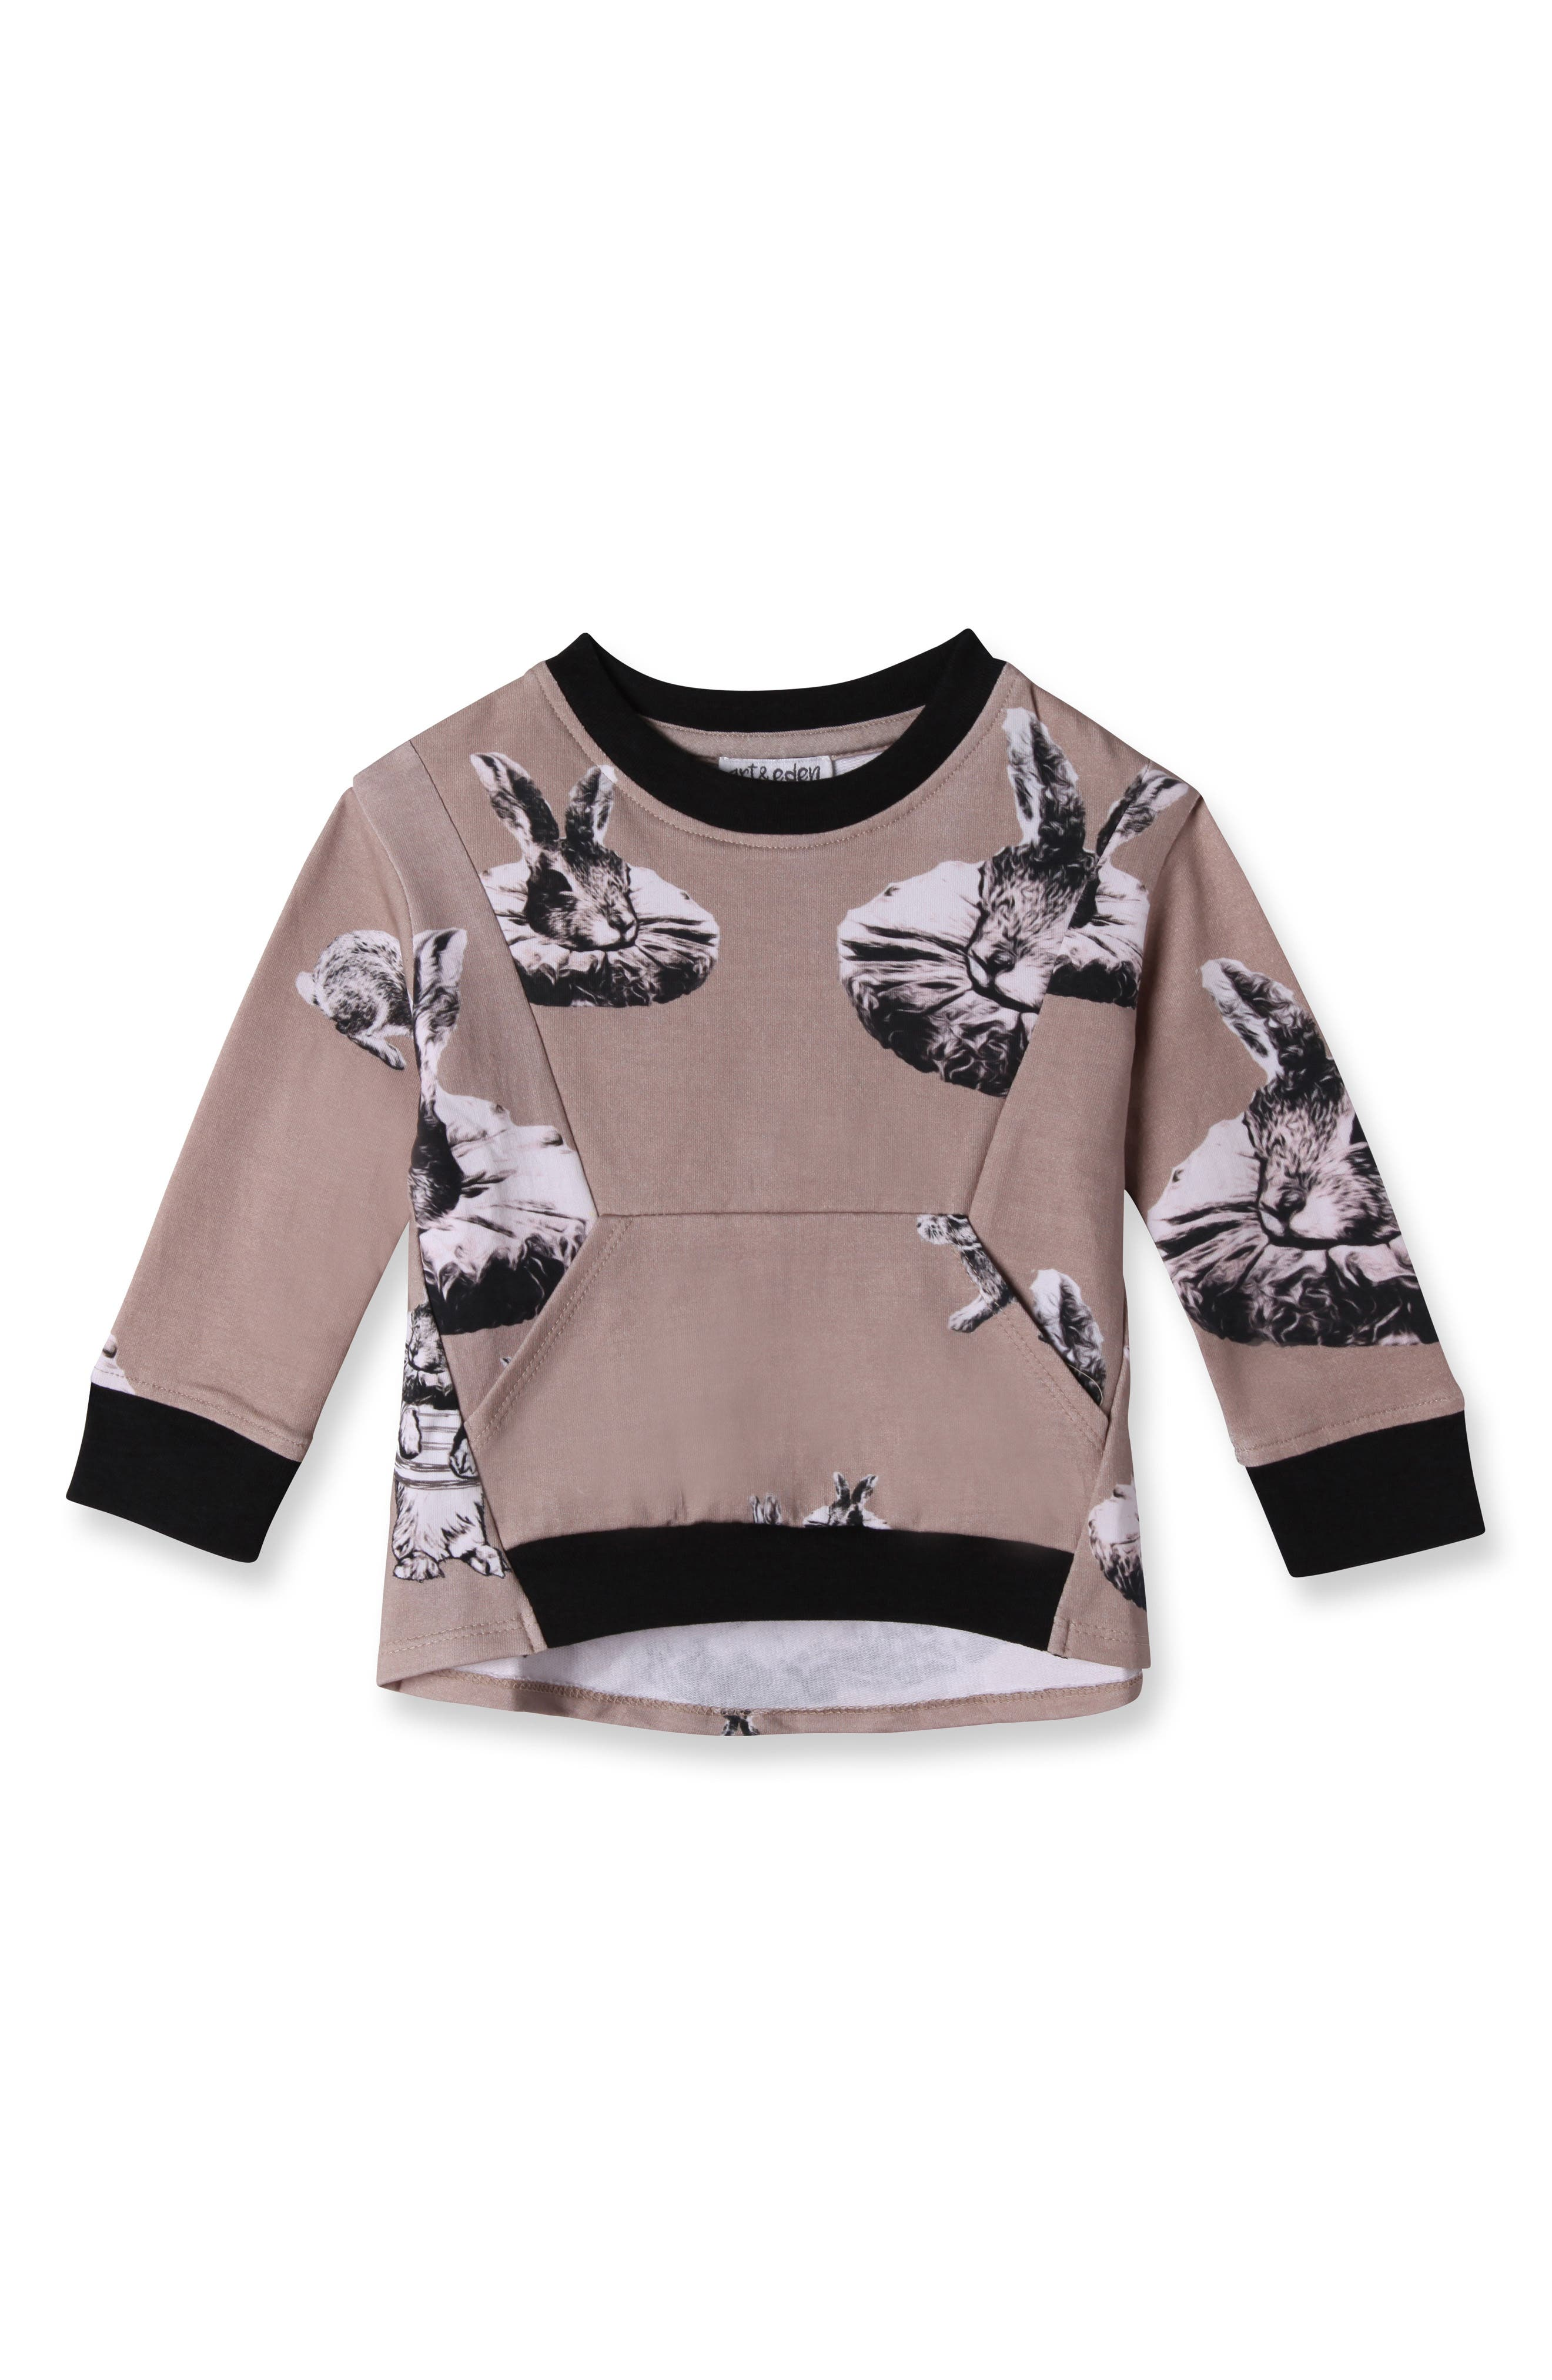 Main Image - Art & Eden Amelia Sweatshirt (Baby Girls)